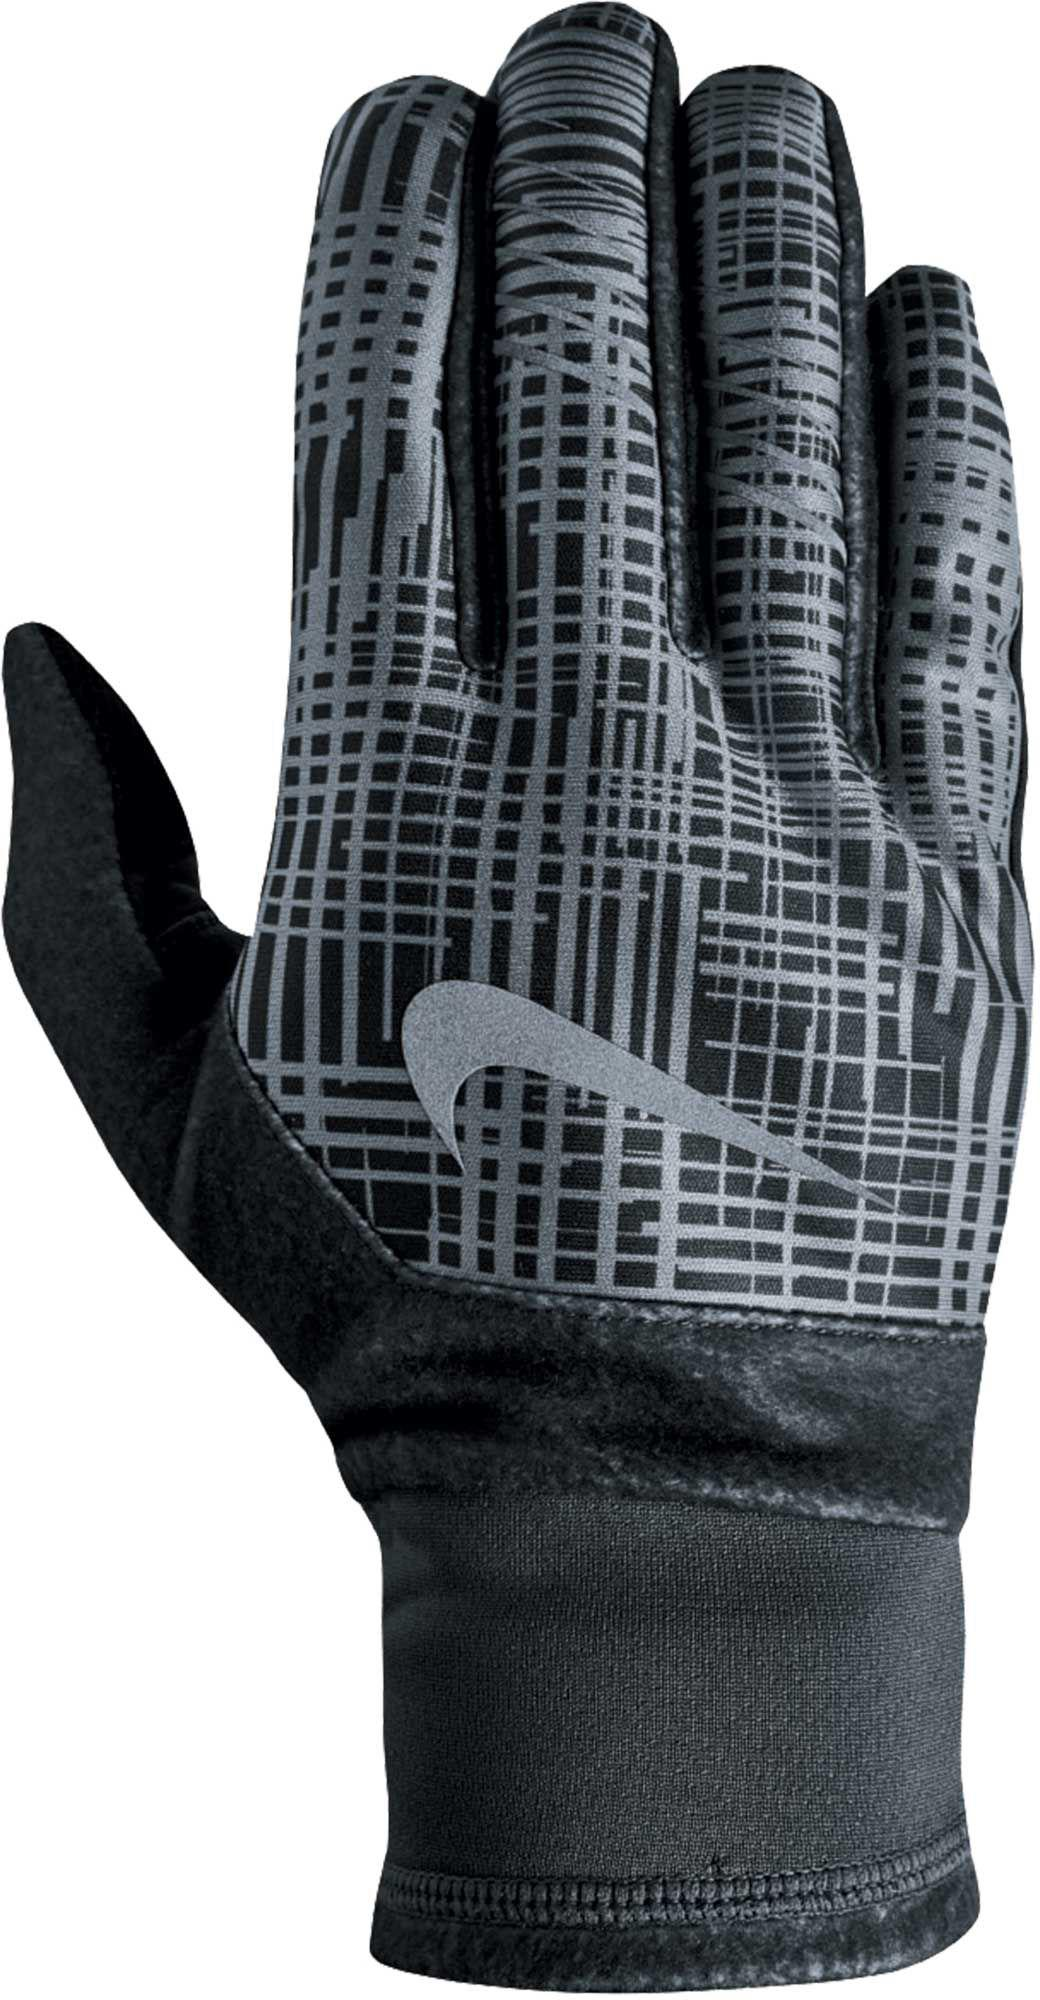 Nike | Multicolor Printed Therma-fit Elite Run Gloves 2.0 for Men | Lyst.  View Fullscreen